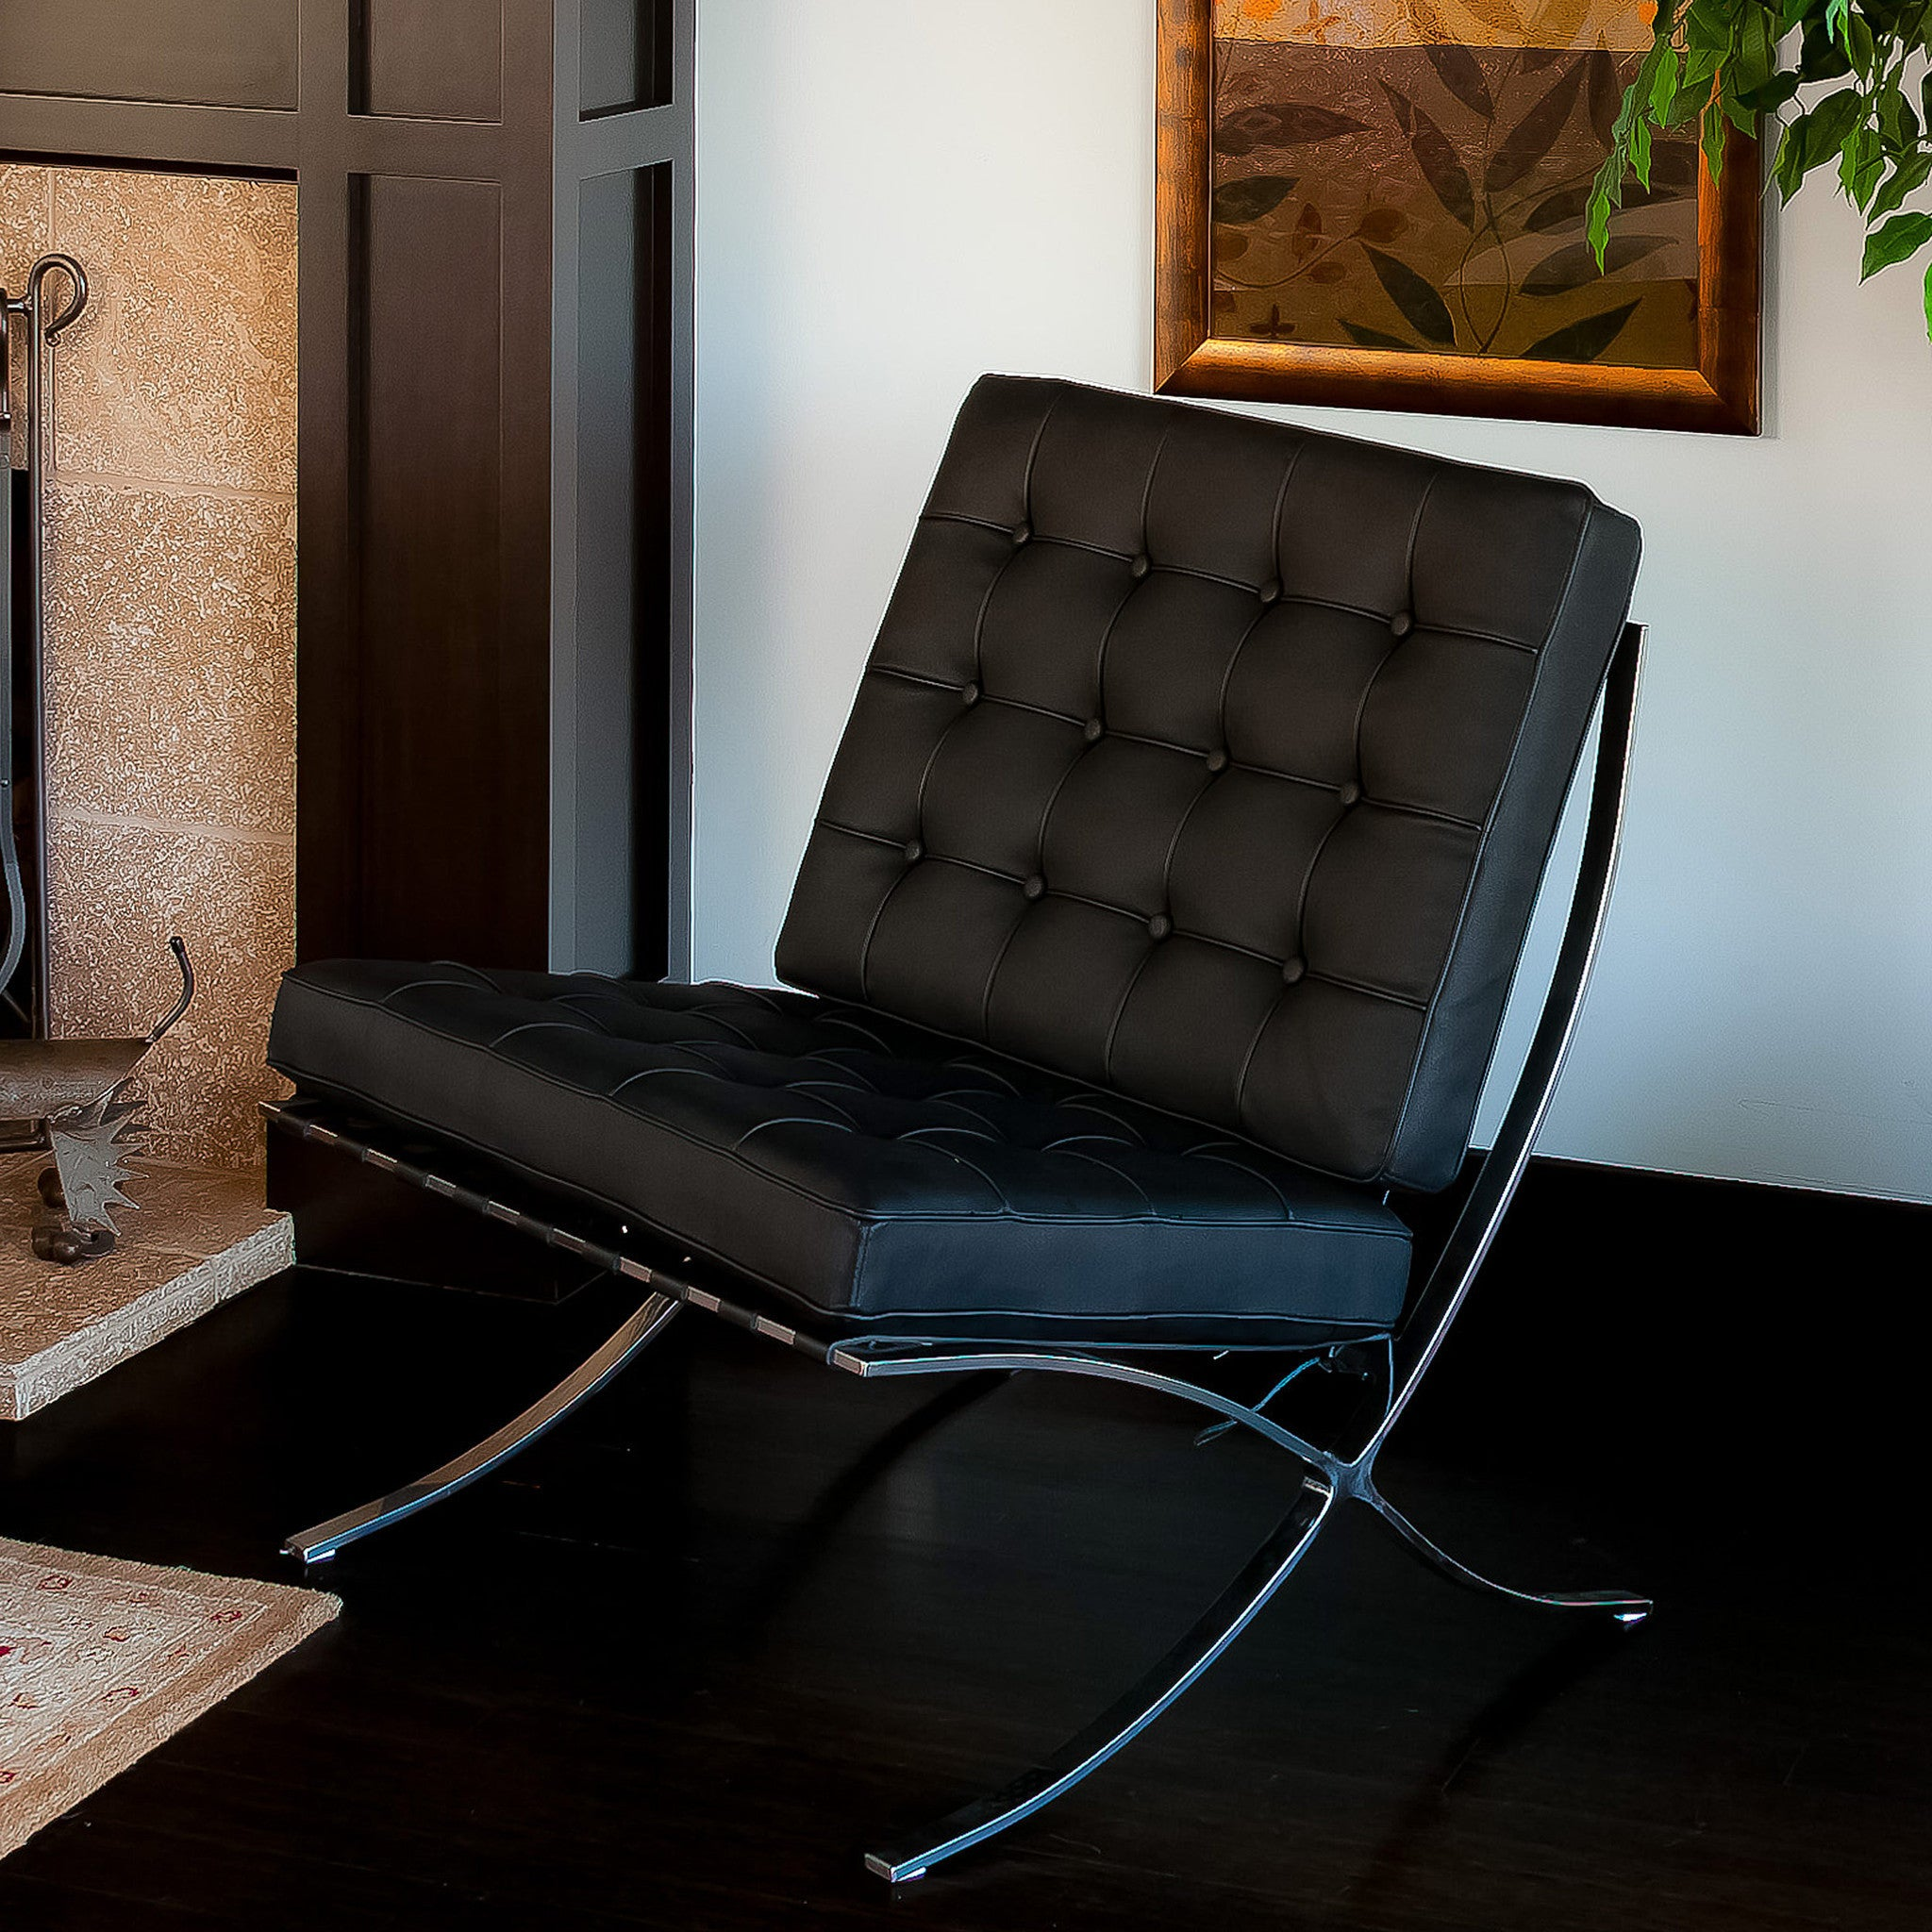 pavilion black leather modern accent chair – nhmodern - pavilion black leather modern accent chair